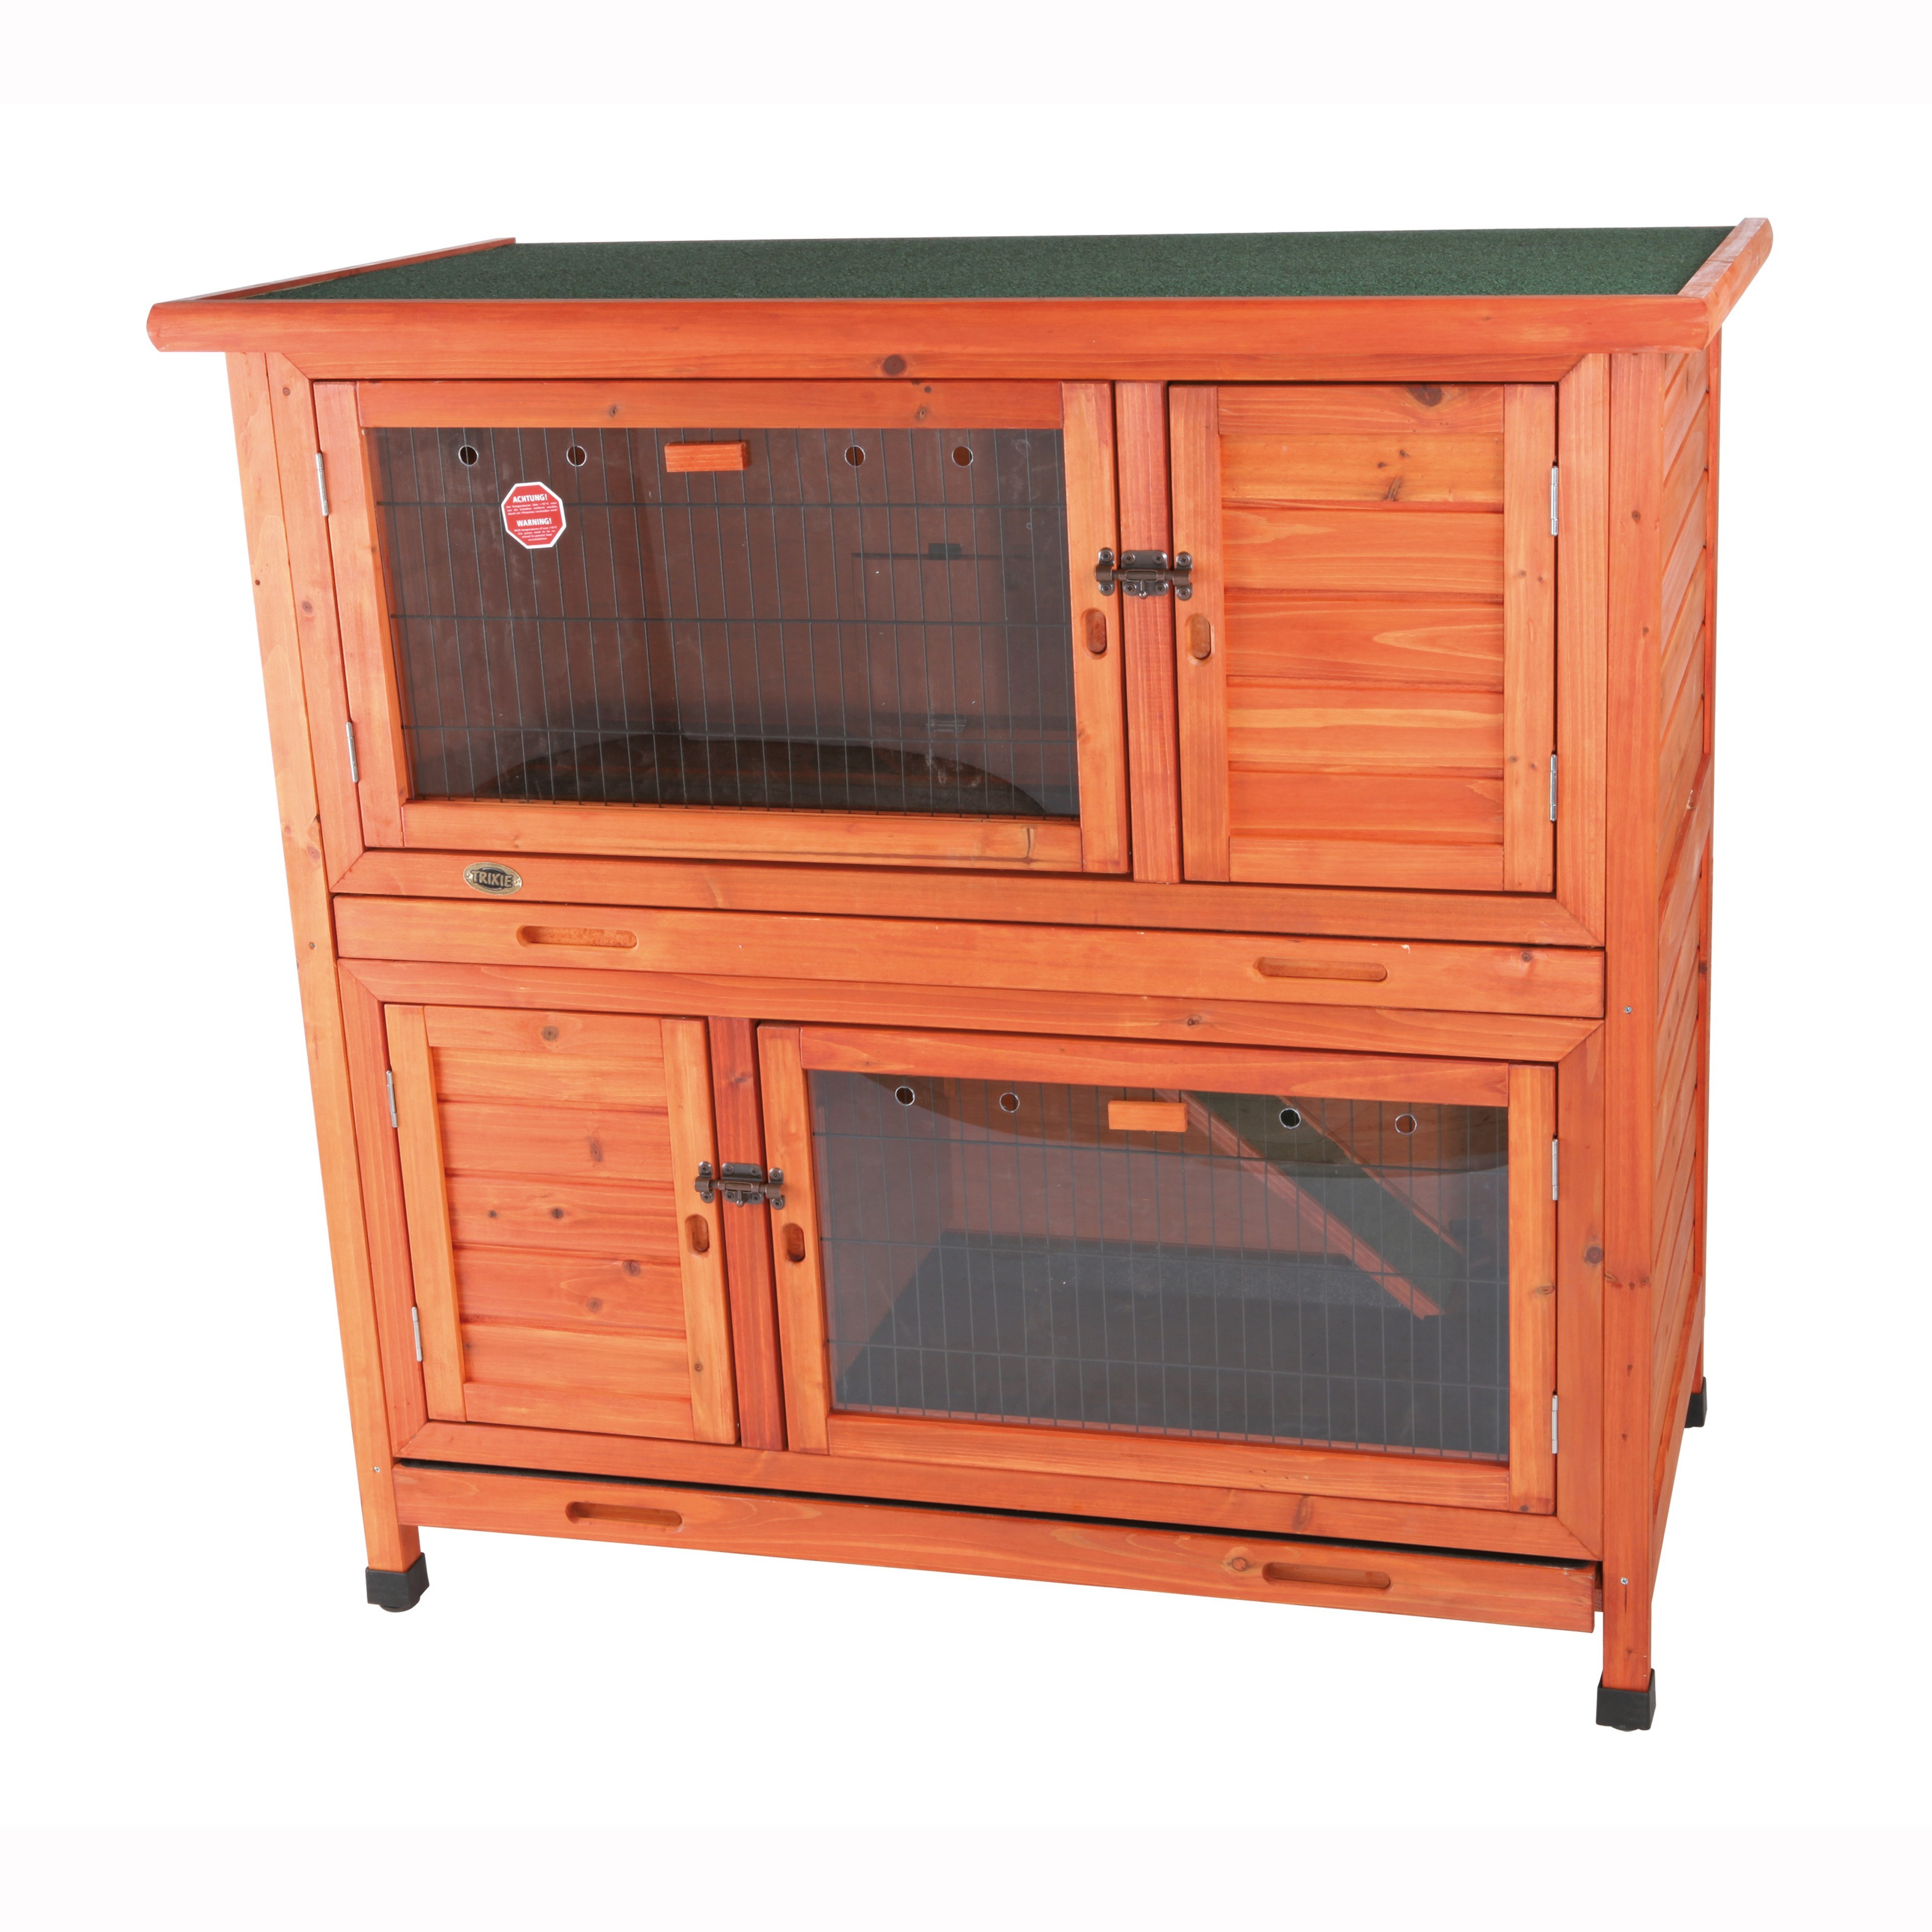 Trixie Pet 2-in-1 Rabbit Hutch with Insulation